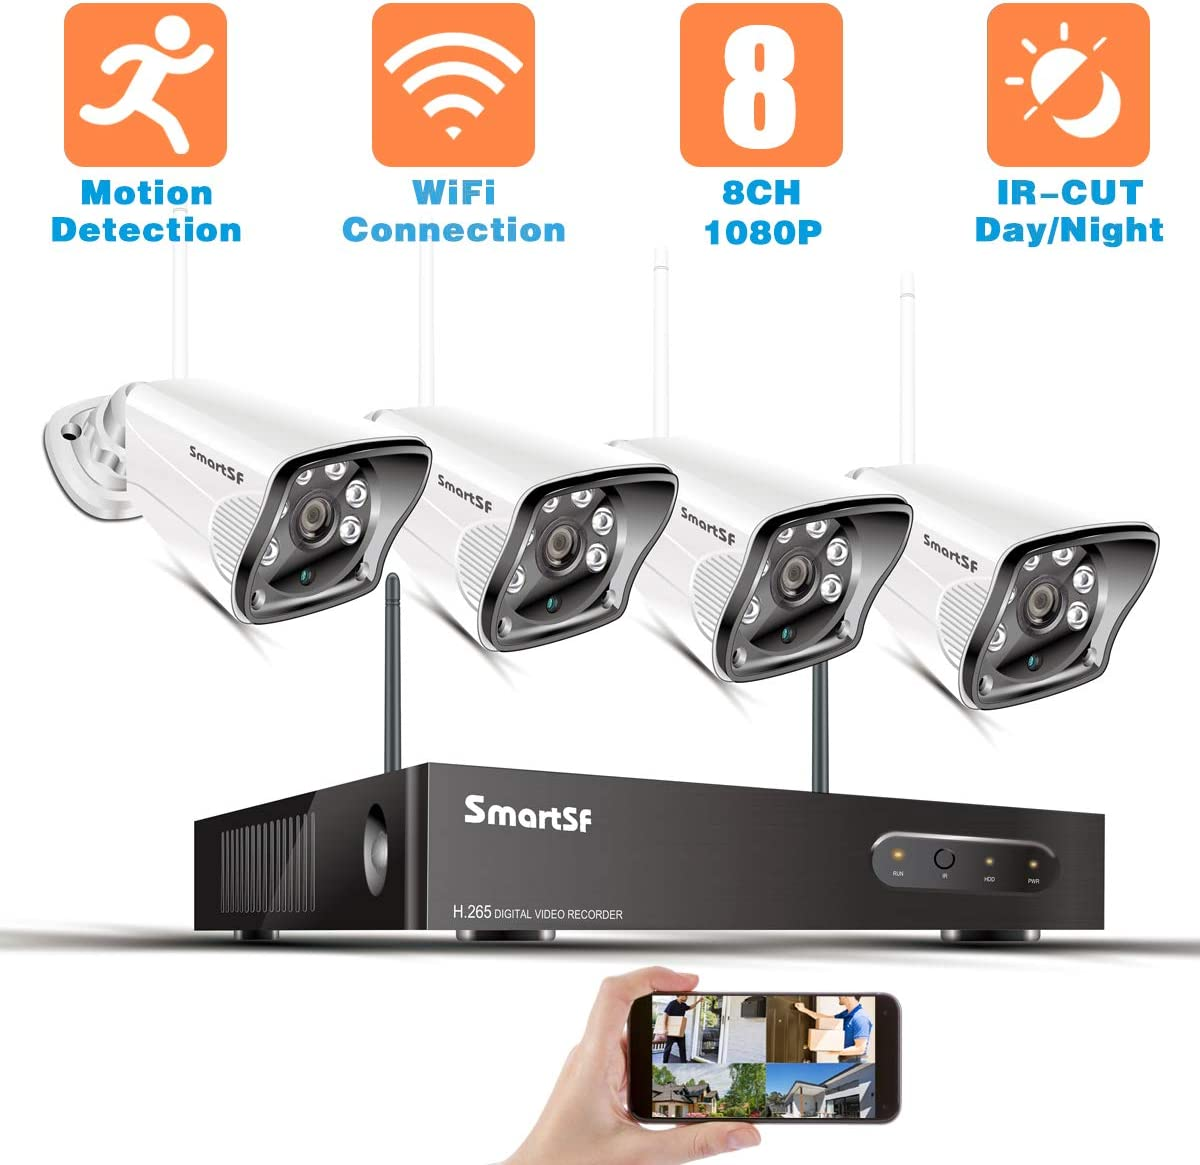 SmartSF 8CH 1080P Wireless Security Cameras System,H.265 8Channel Video Surveillance with 1080P NVR and 4Pcs 720P Weatherproof Bullet IP Cameras, IR-Cut Night Vision,Motion Detection,Remote Access